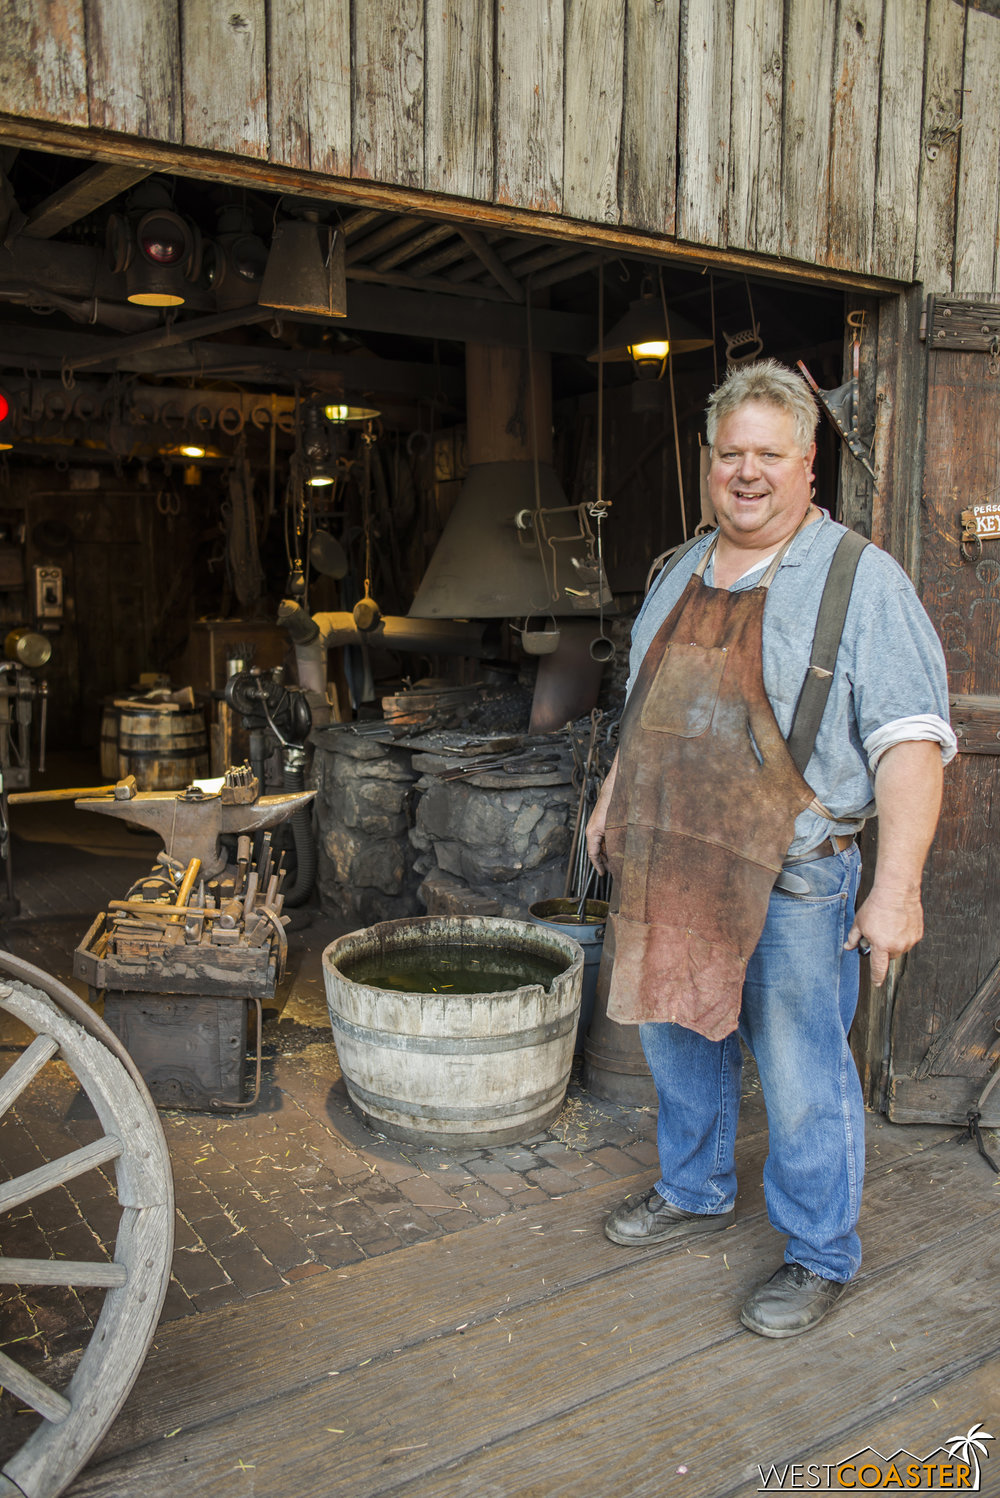 The blacksmith poses for a picture while taking a brief break from his work.